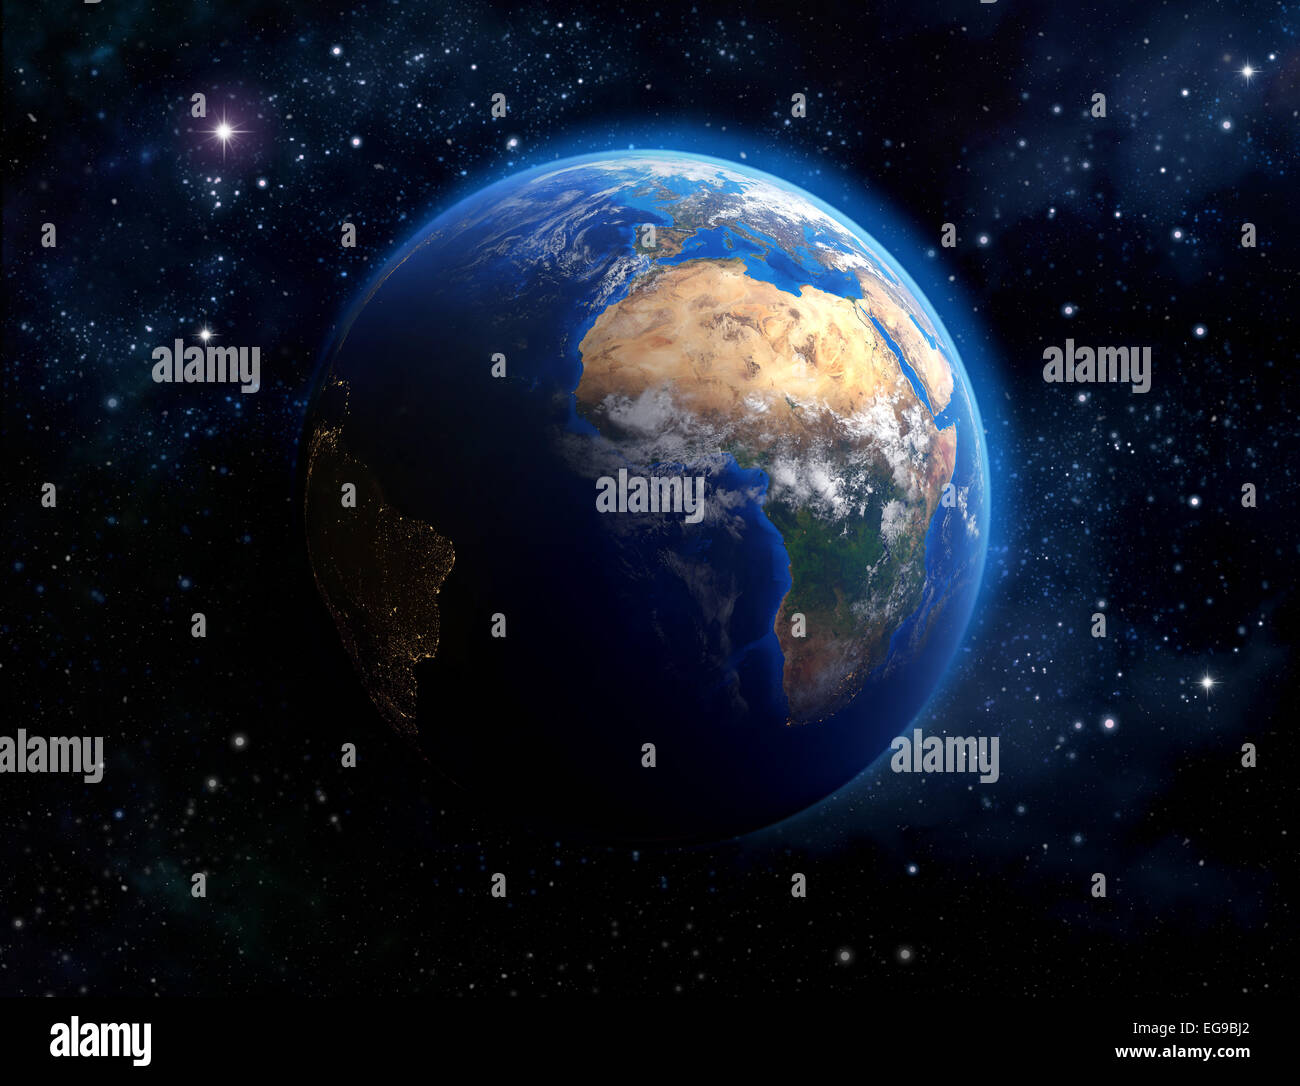 Face of the Earth. Imaginary view of planet earth in outer space. Elements of this image furnished by NASA - Stock Image